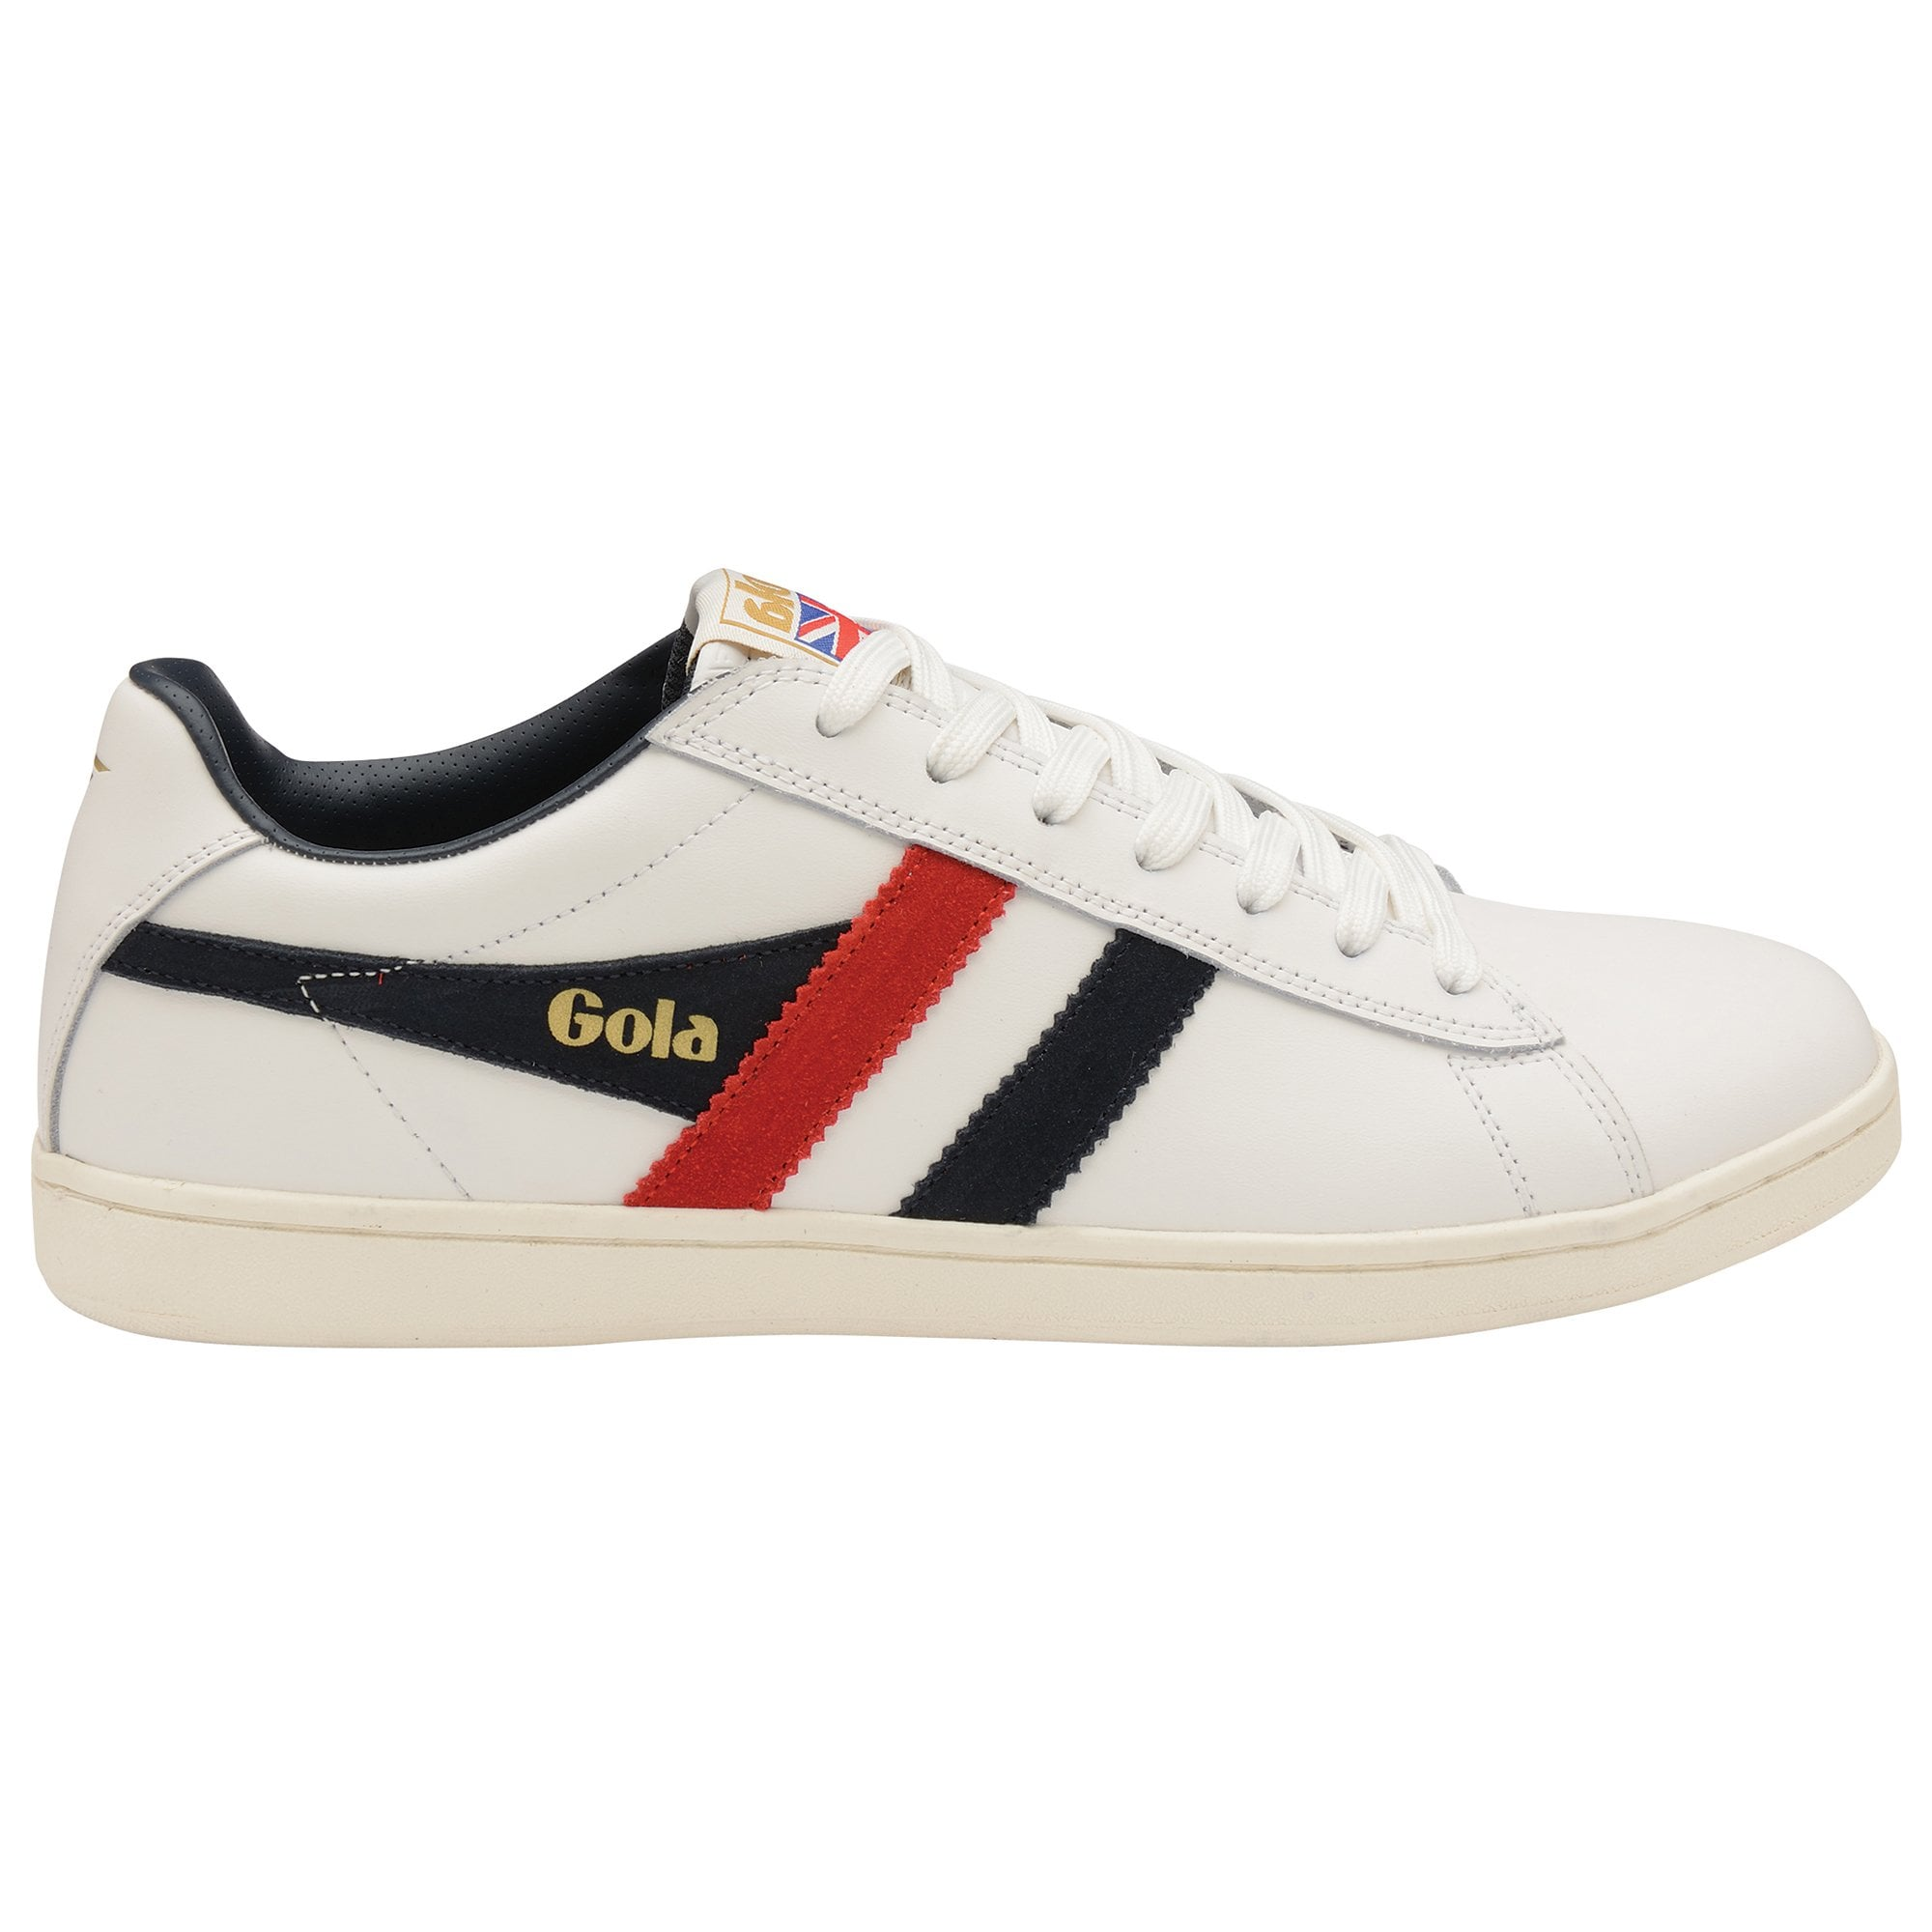 Buy Gola Equipe white/navy/red trainers